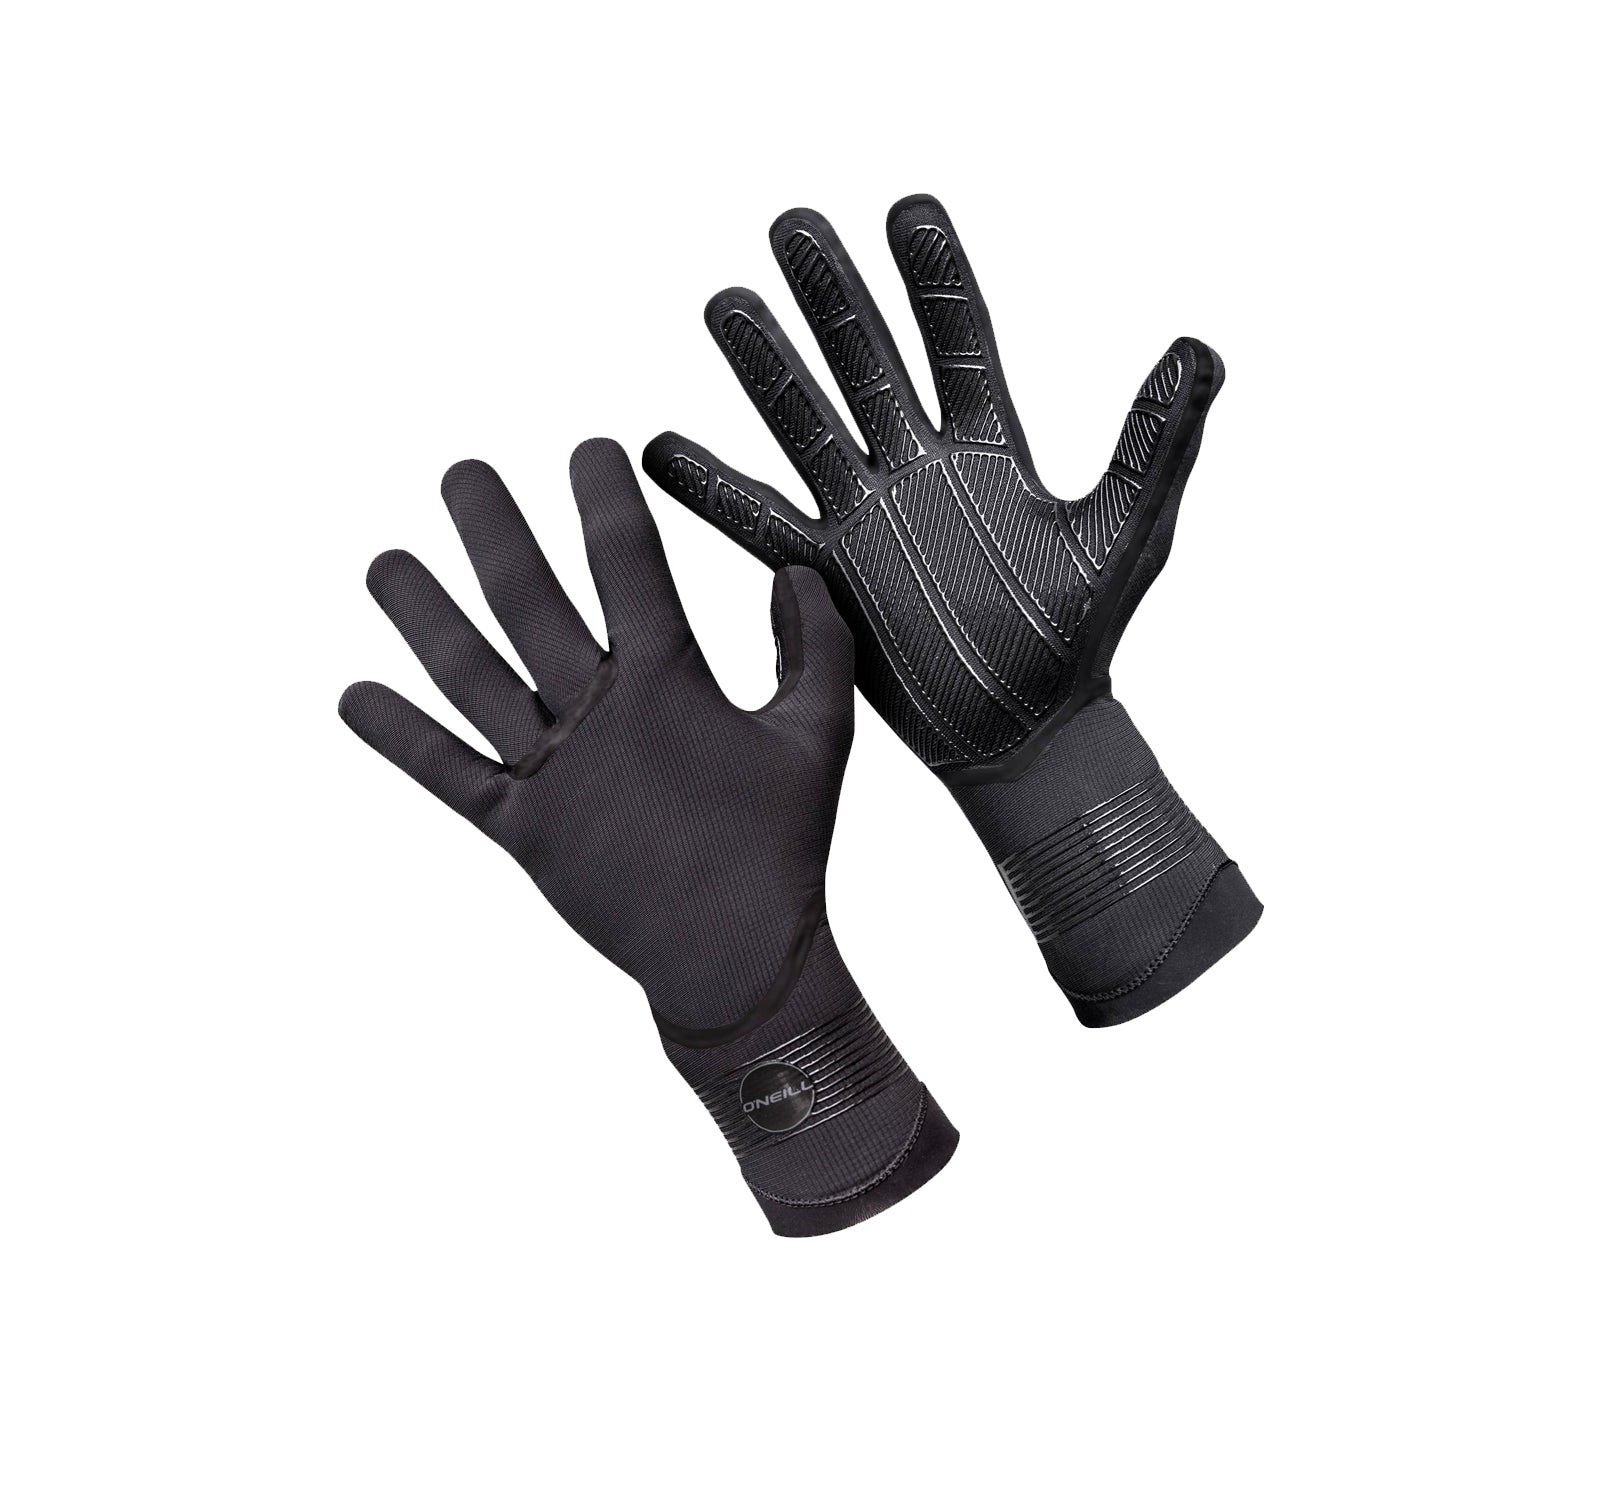 O'Neill Psycho Tech 1.5mm Men's Wetsuit Gloves